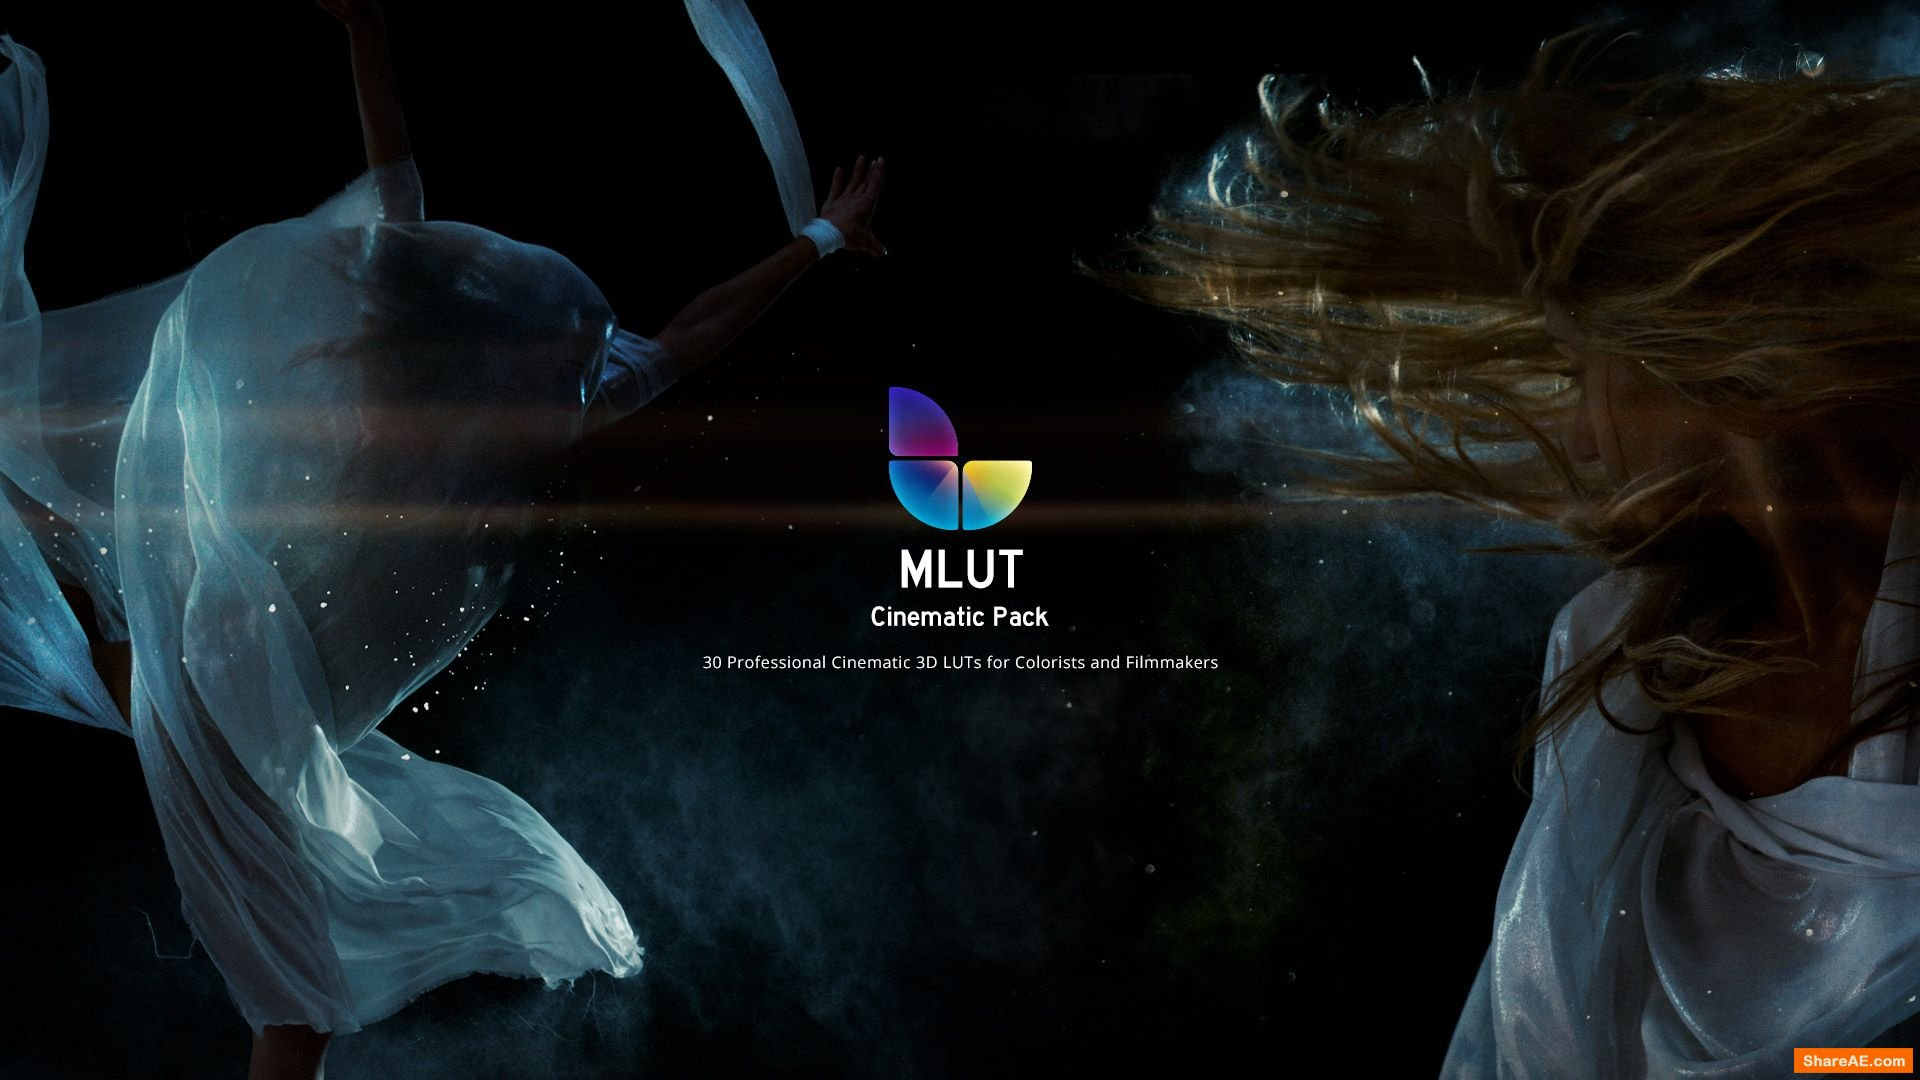 mLUT Cinematic Pack - 30 Professional Cinematic 3D Luts - MotionVFX